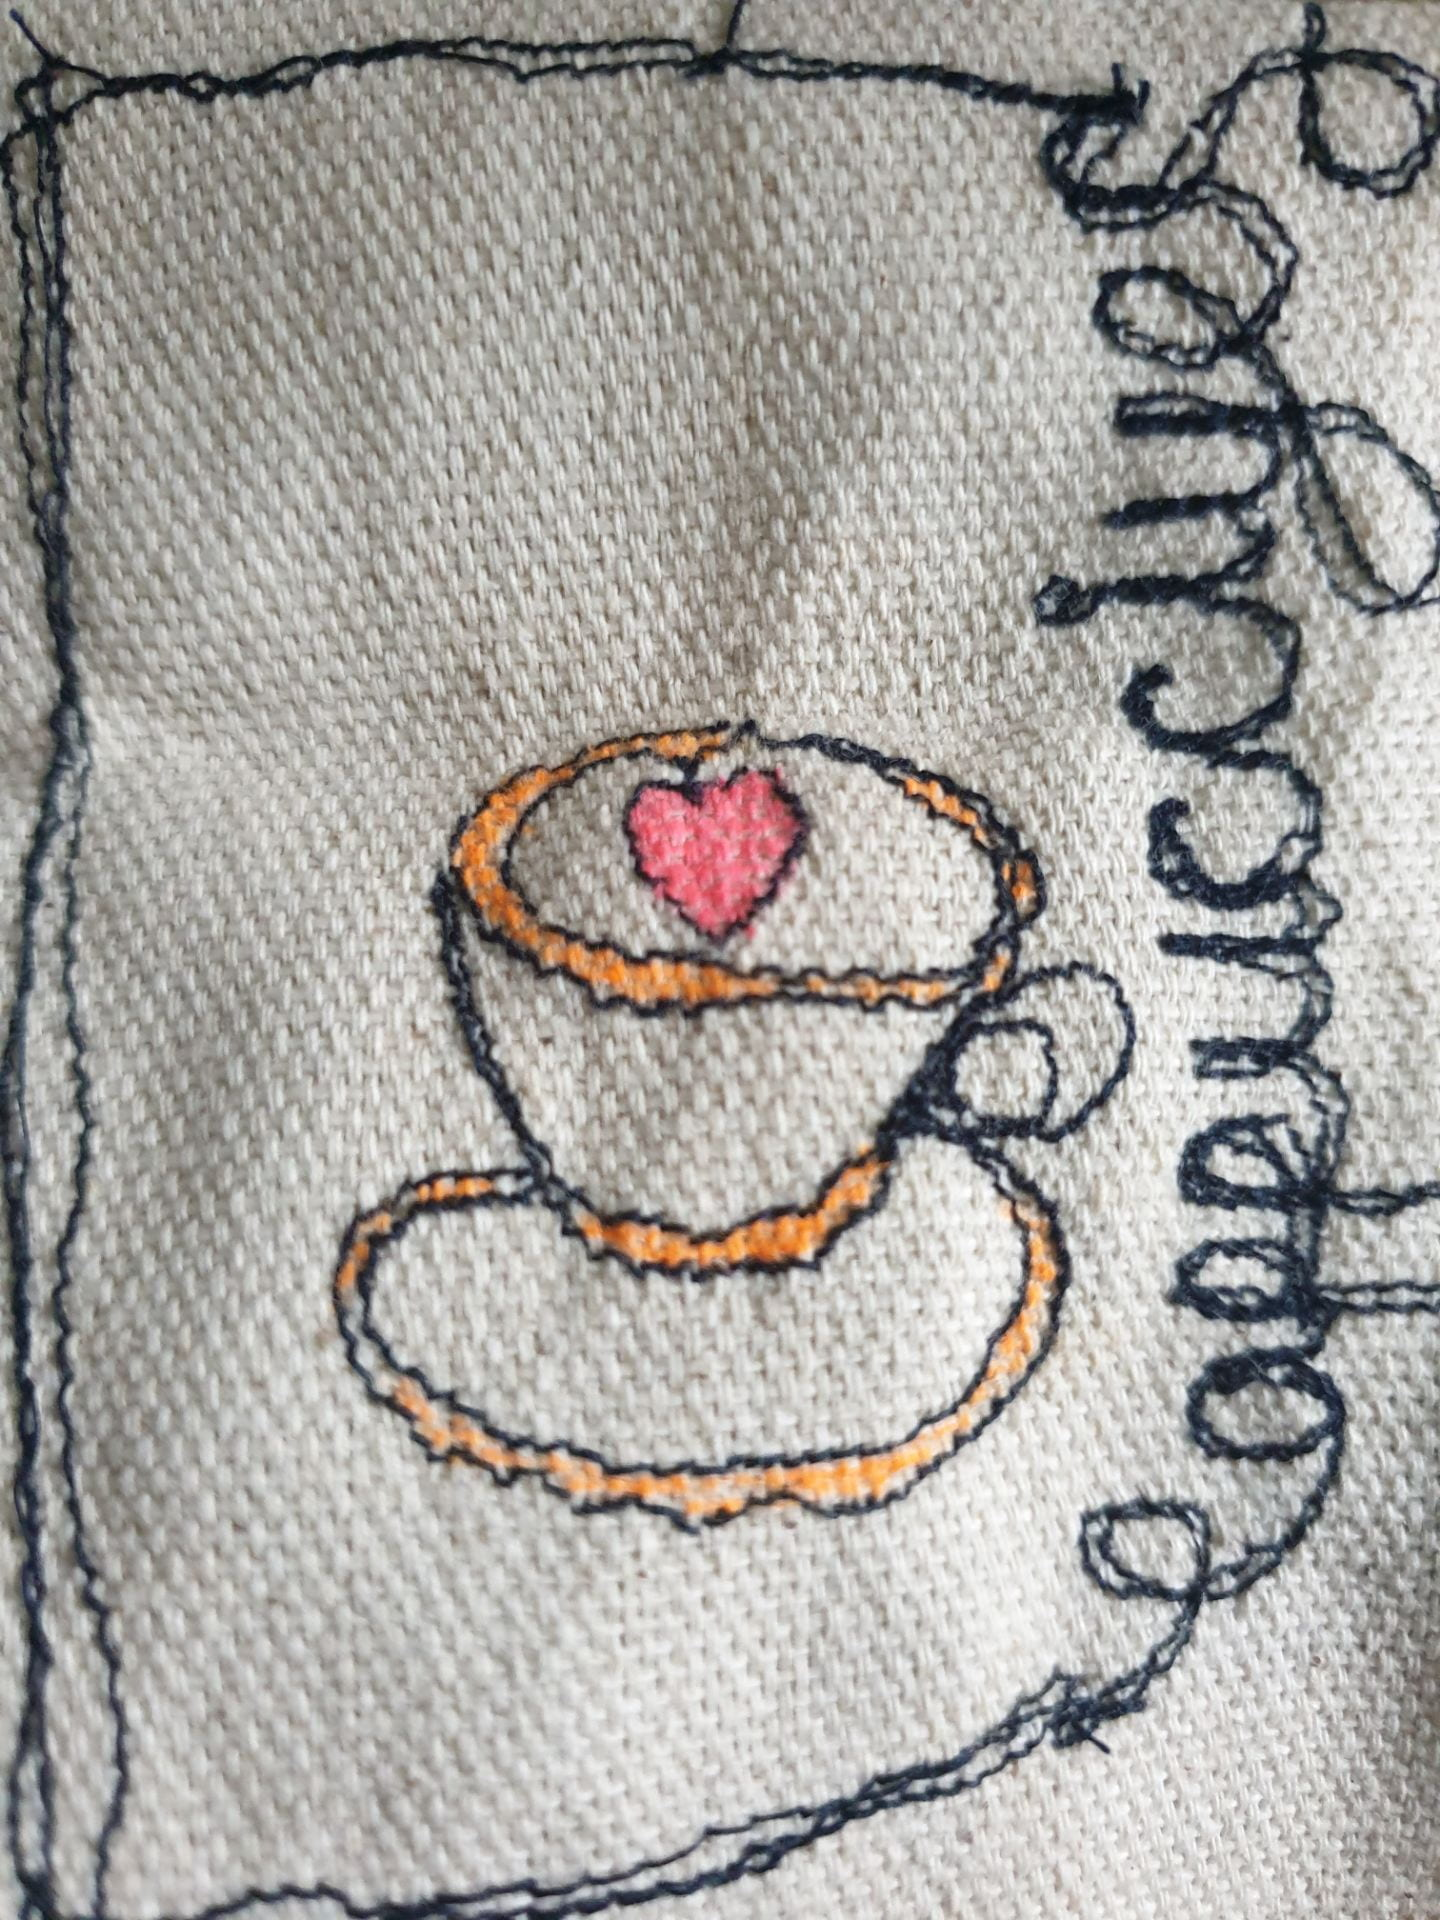 Embroidery showing a tea cup